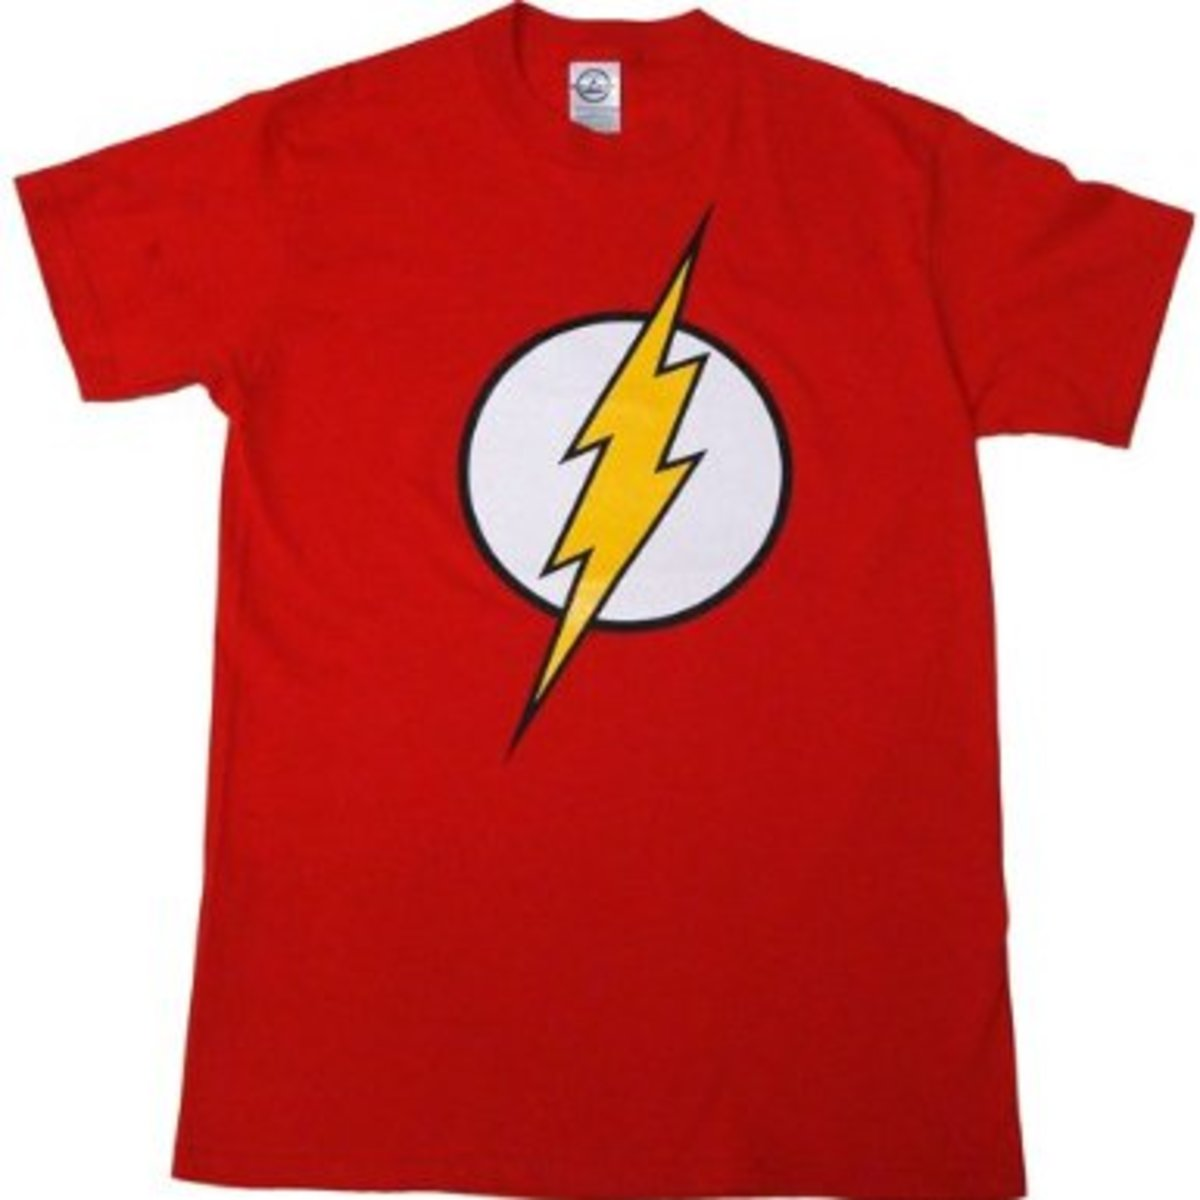 Shedon's Flash Lightning Bolt Shirt